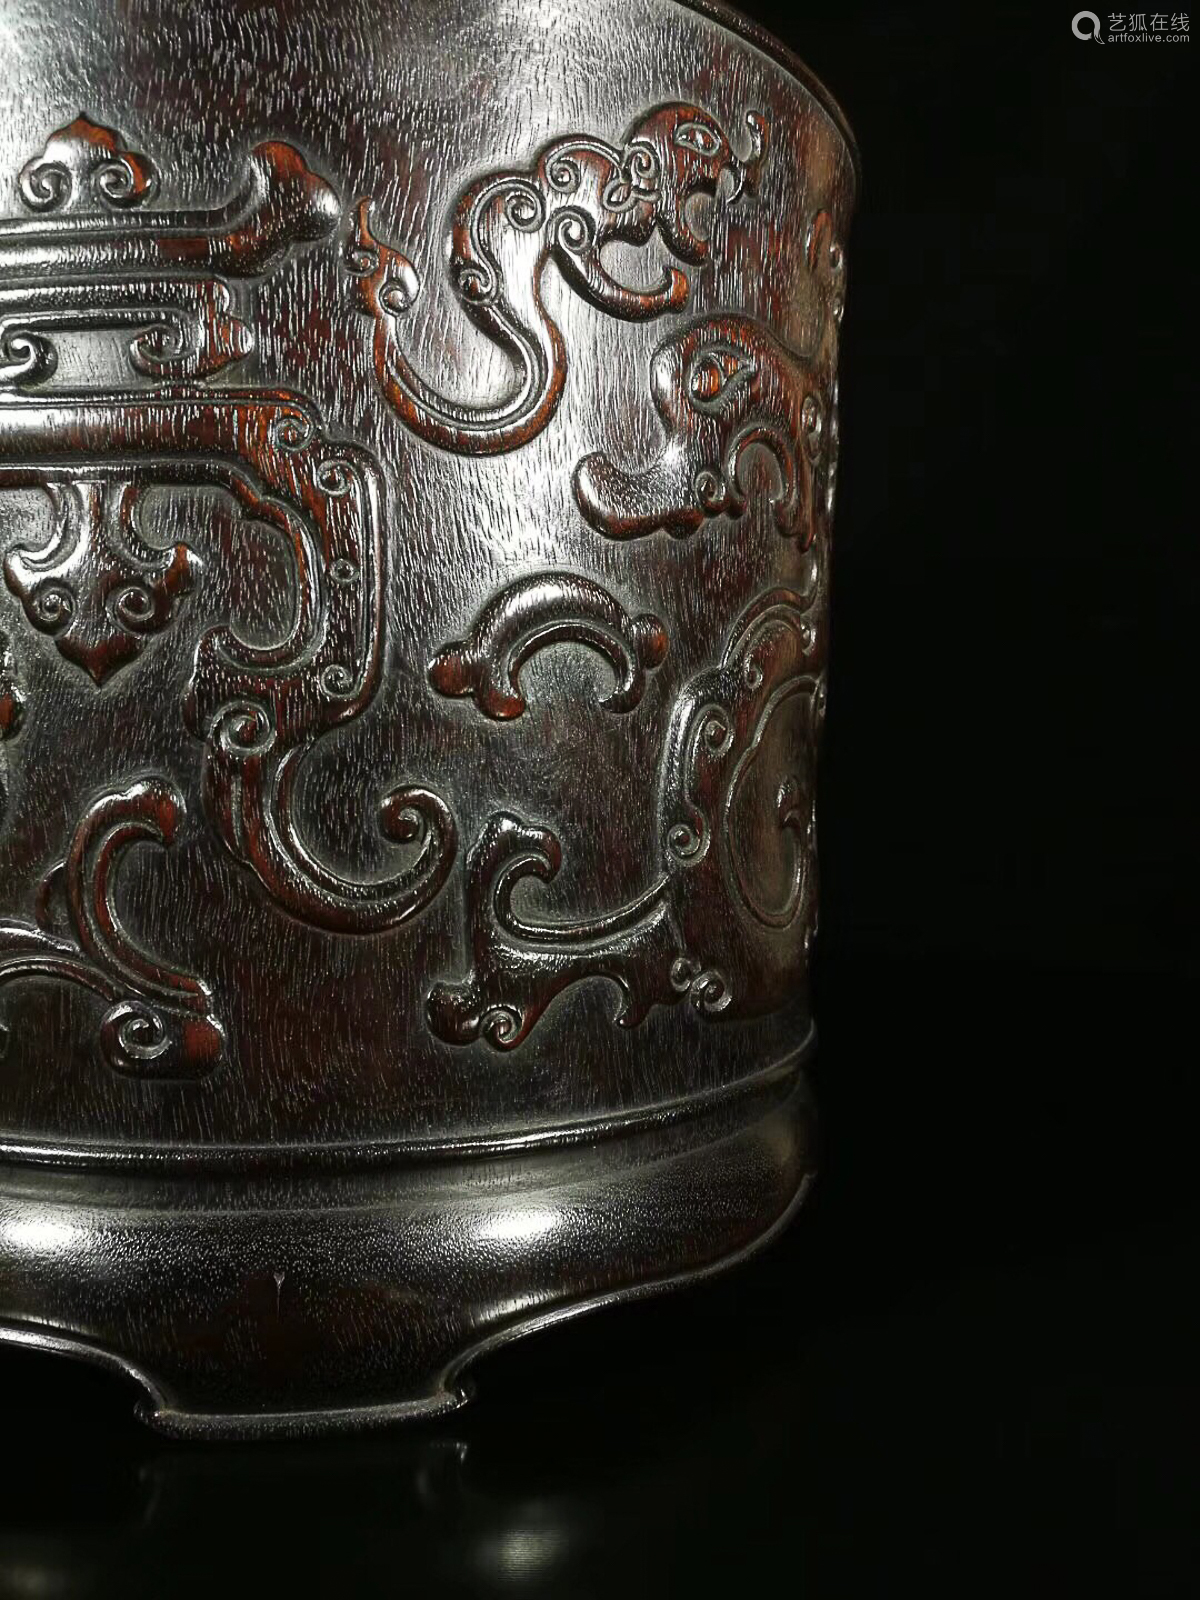 17-19TH CENTURY, A GRASS&GRADON PATTERN RED SANDALWOOD BRUSH HOLDER, QING DYNASTY